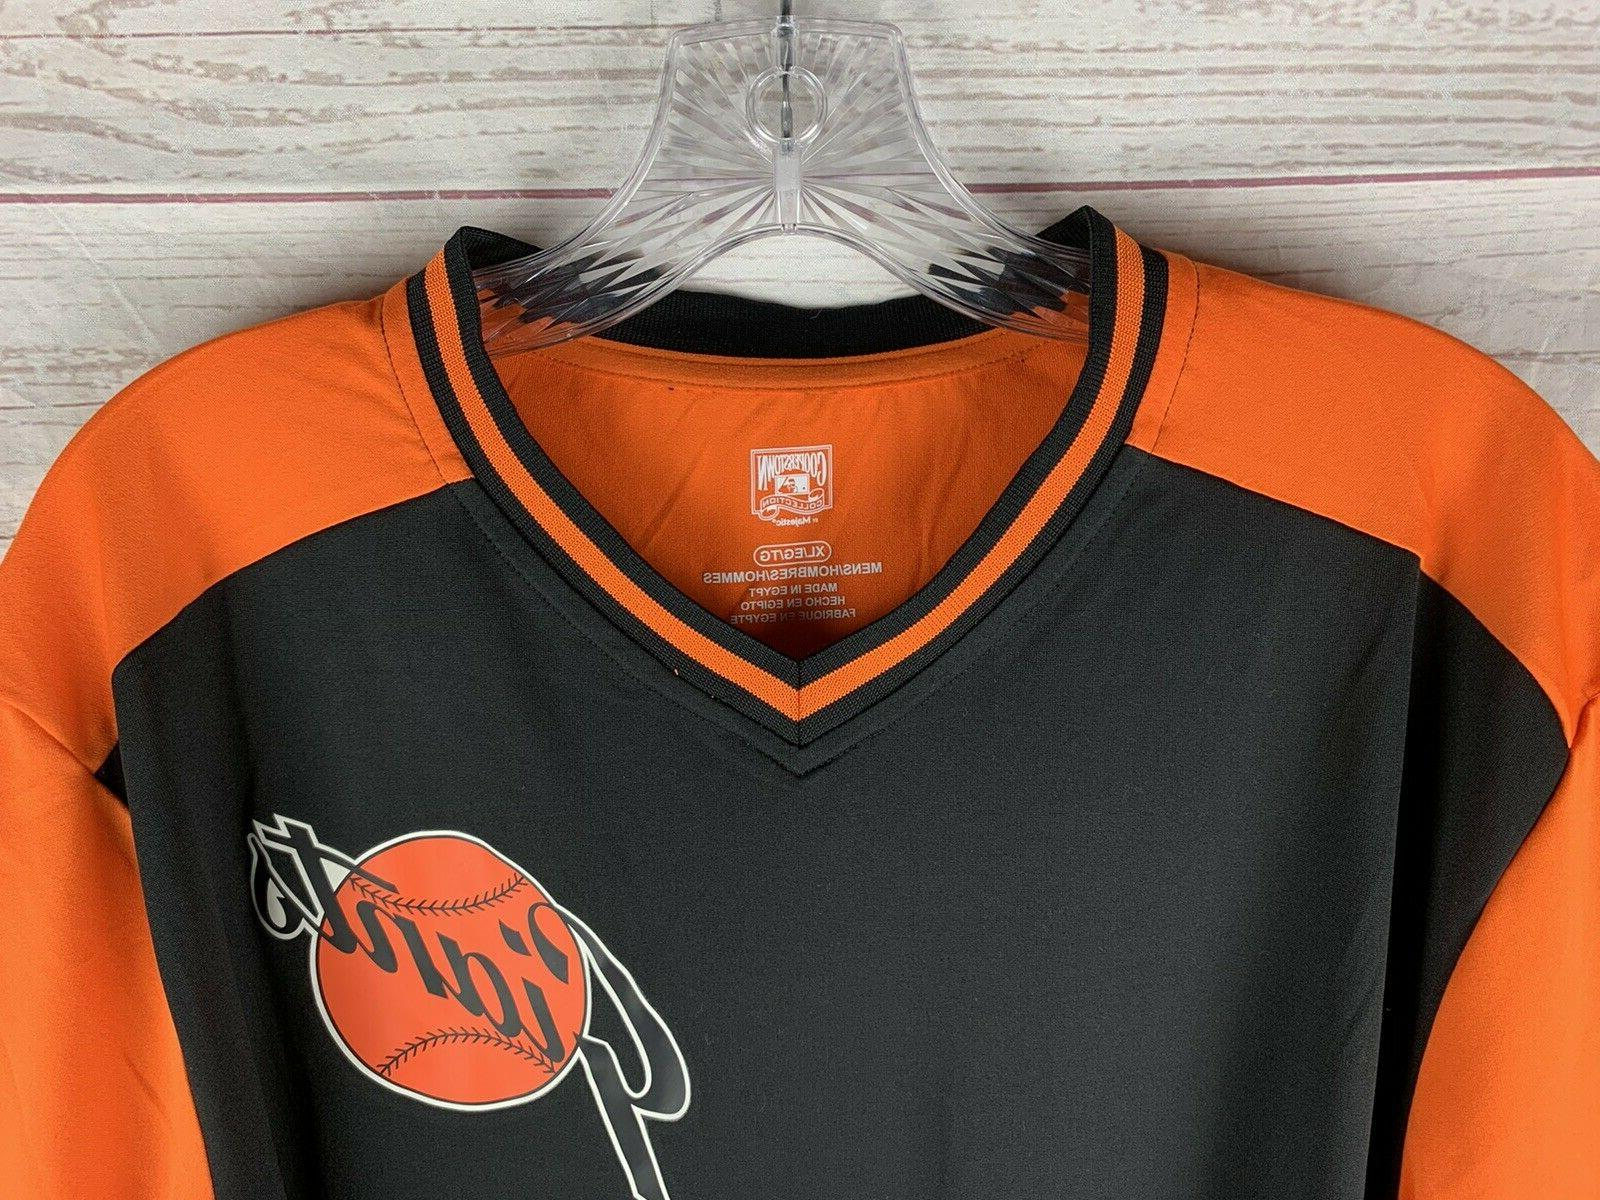 New Collection Francisco Giants jersey shirt size men's